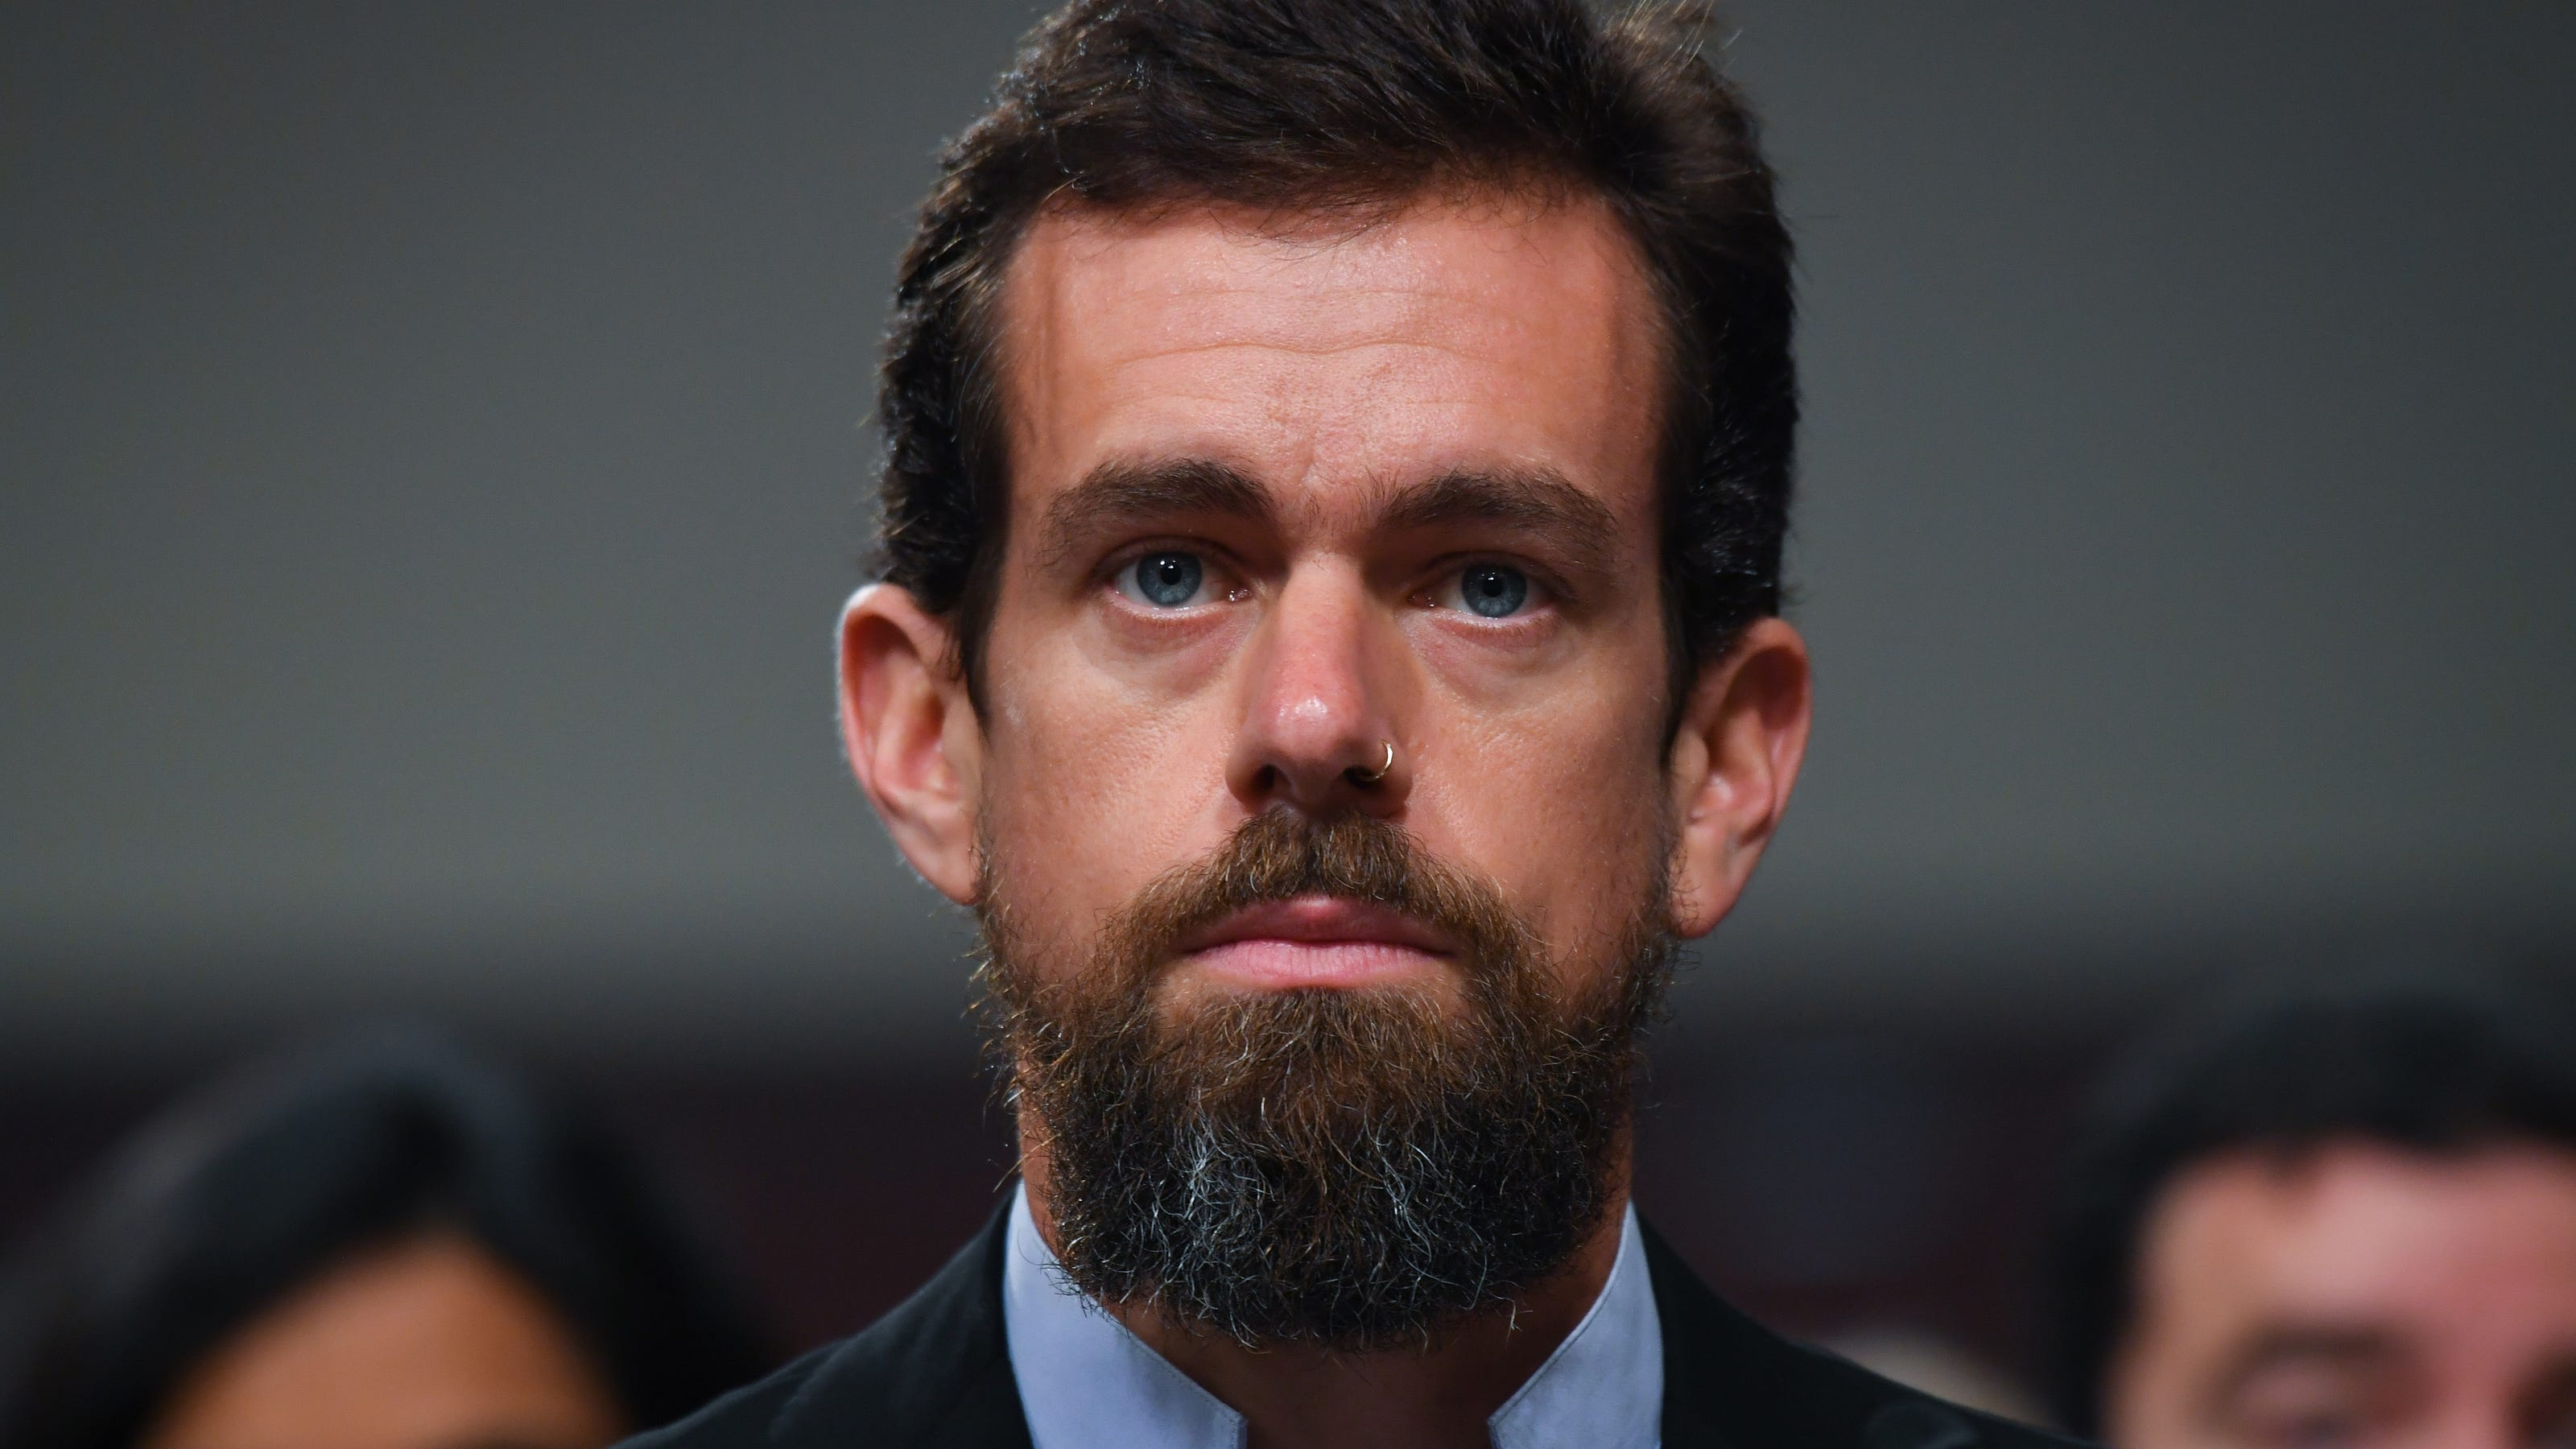 Hedge Fund Elliott Management Wants To Remove Twitter Ceo Jack Dorsey